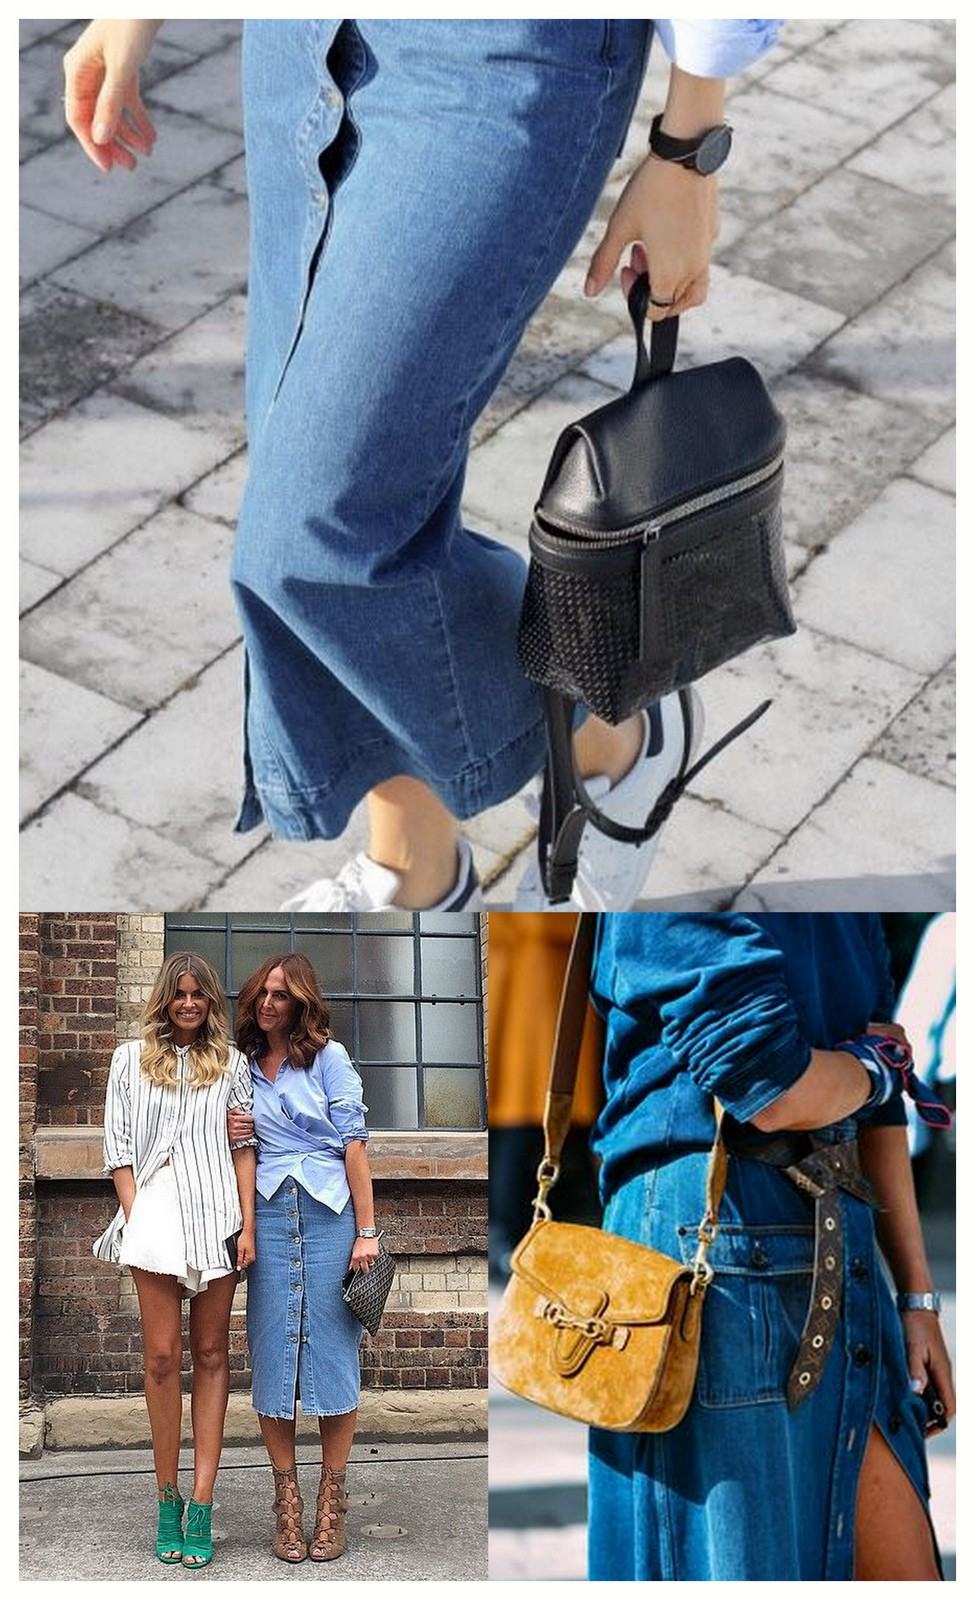 Button down skirt, fashion trends this summer